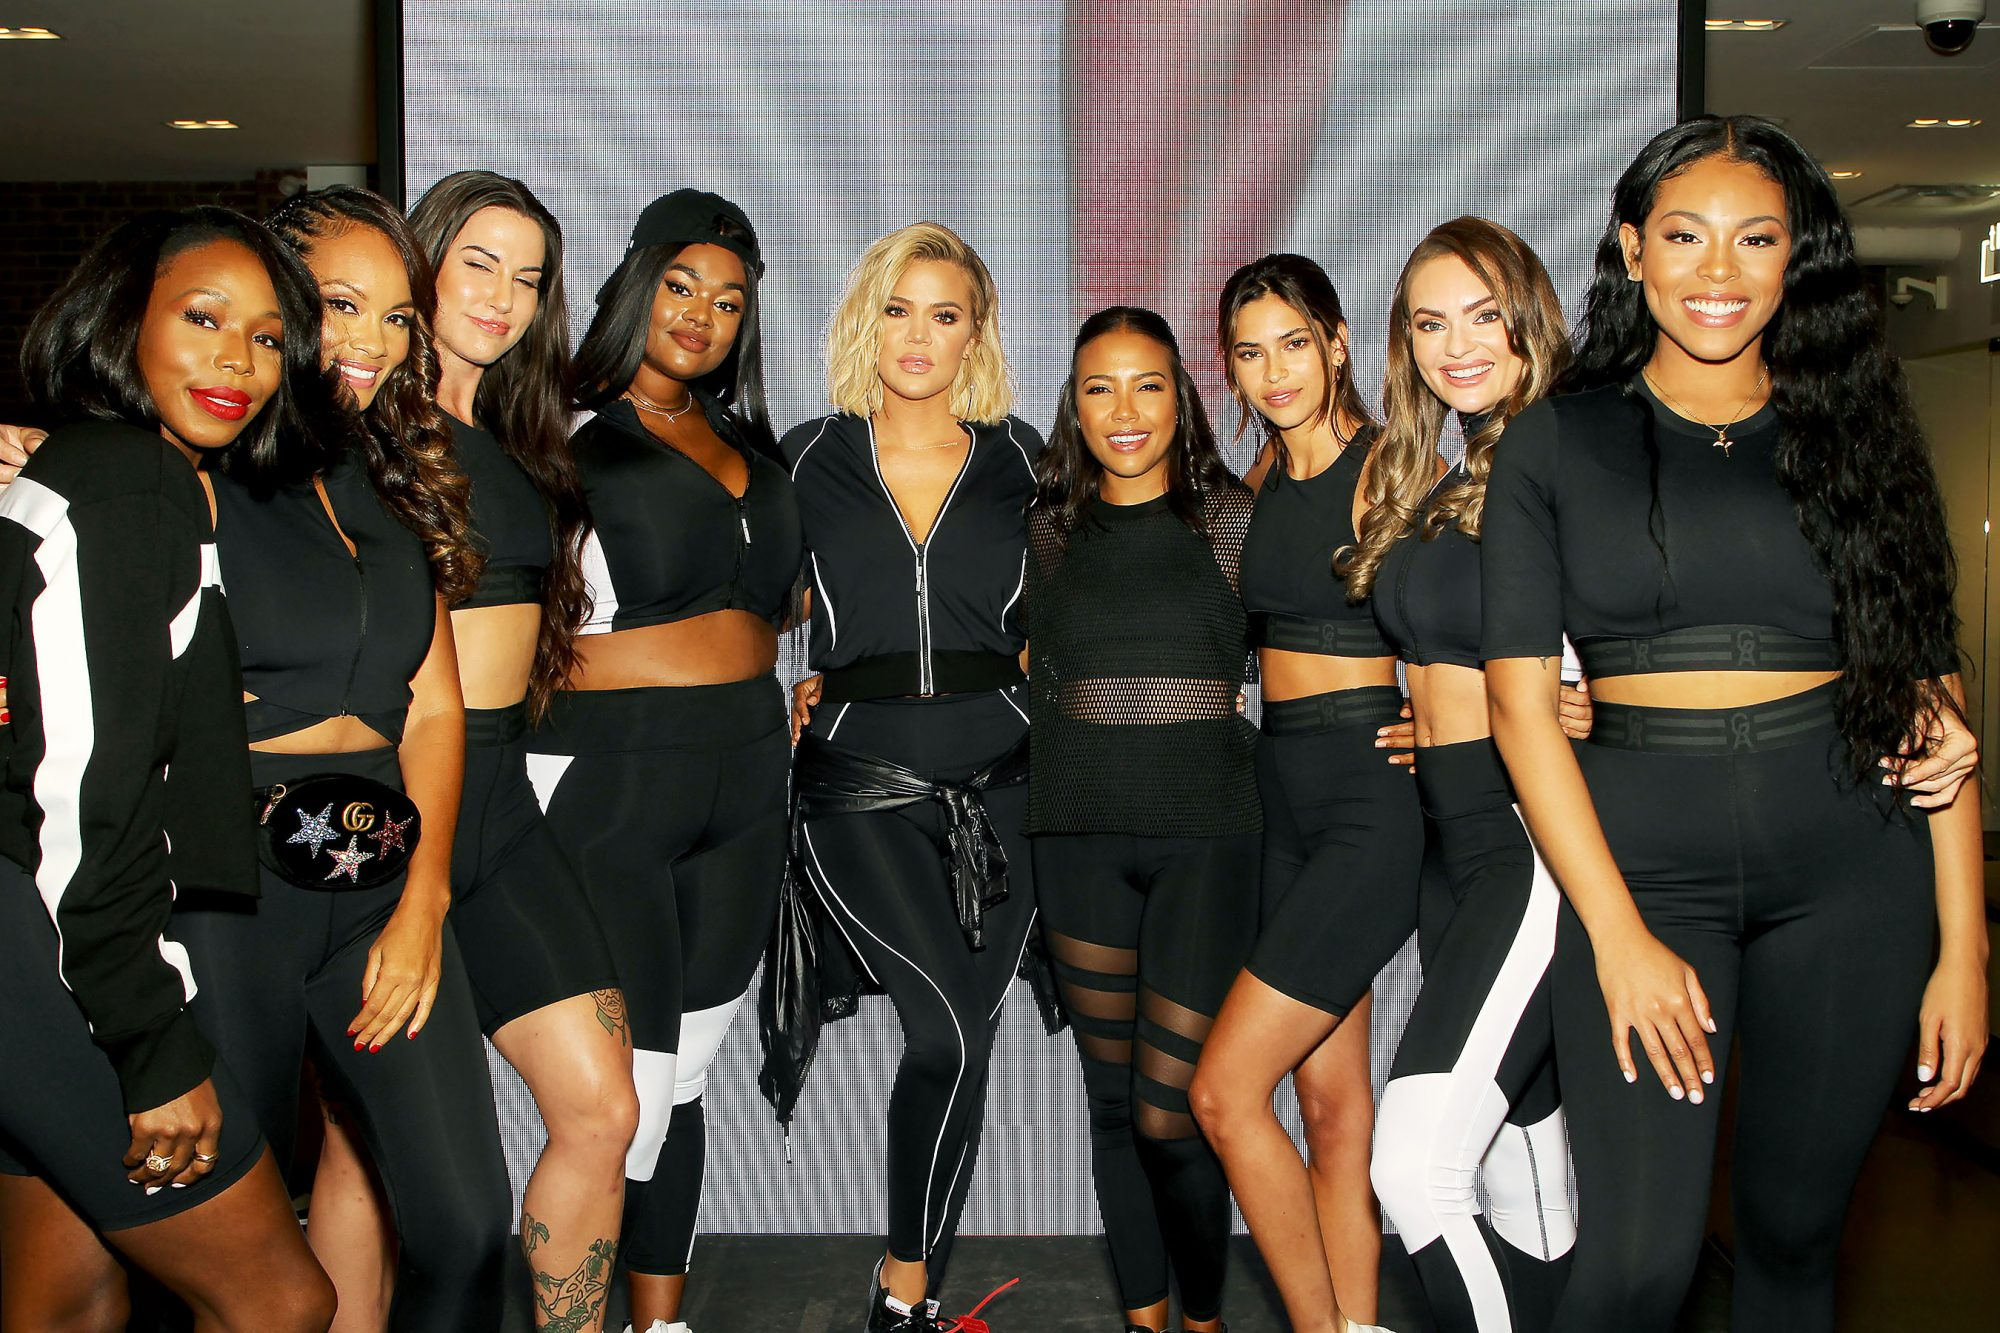 Good American and SIX:02 Launch Performance Line with Co-Founders Emma Grede and Khloe Kardashian in New York City, USA - 02 Aug 2018